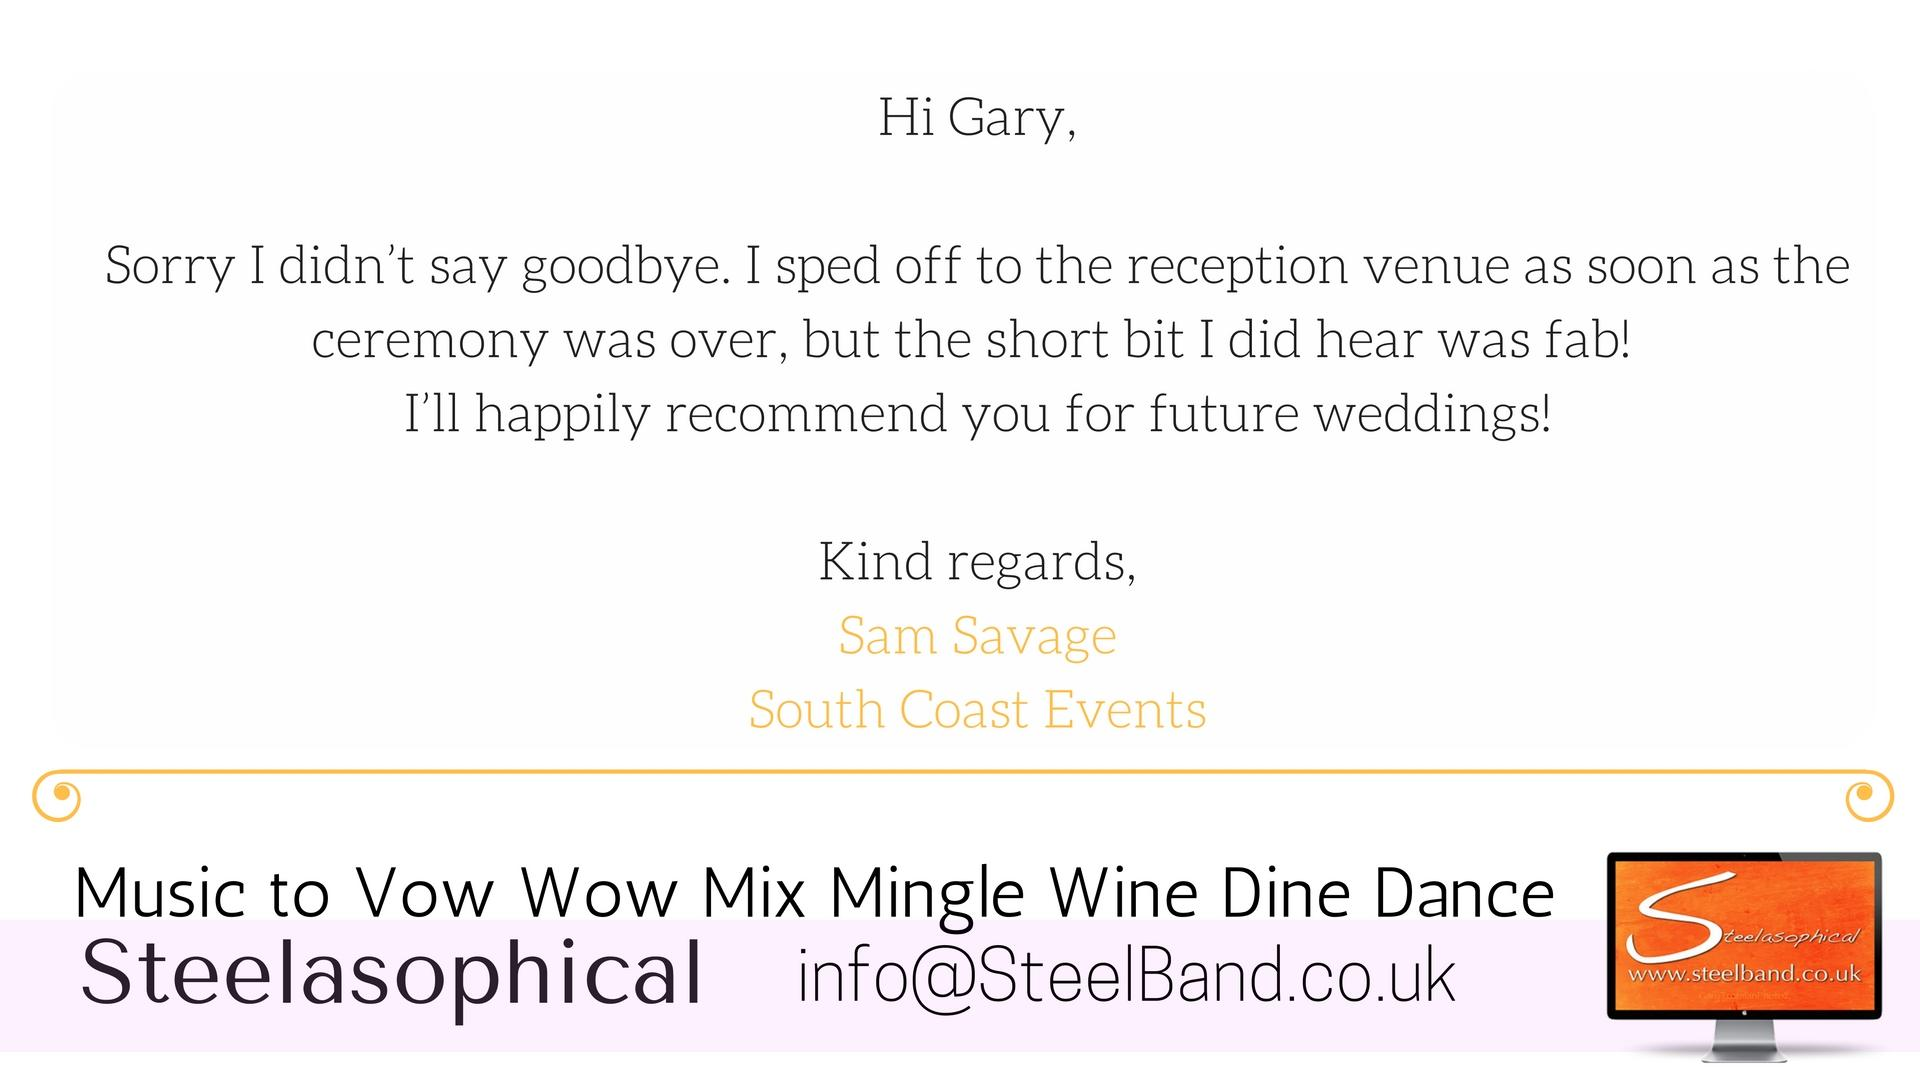 Sandbanks Hotel Steelasophical Steelband testimonial 004